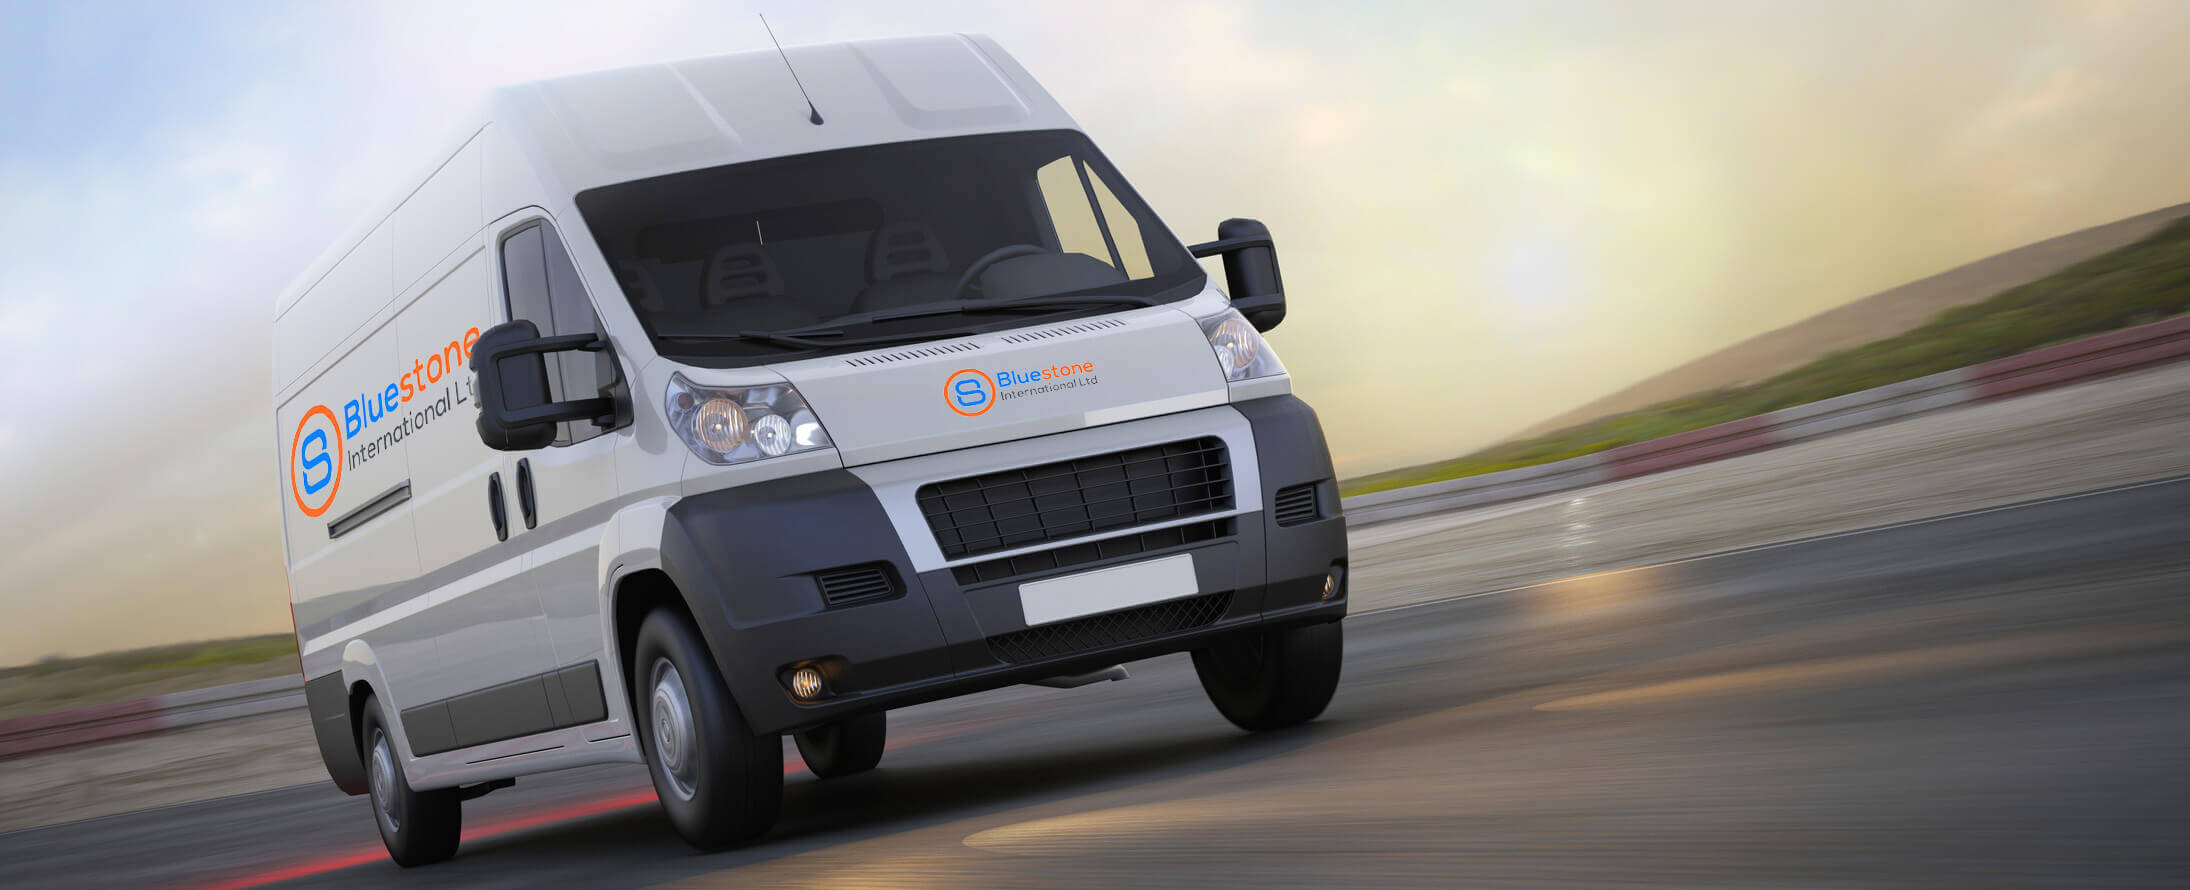 Dedicated UK Spain Express Van Services | Fast Road Freight